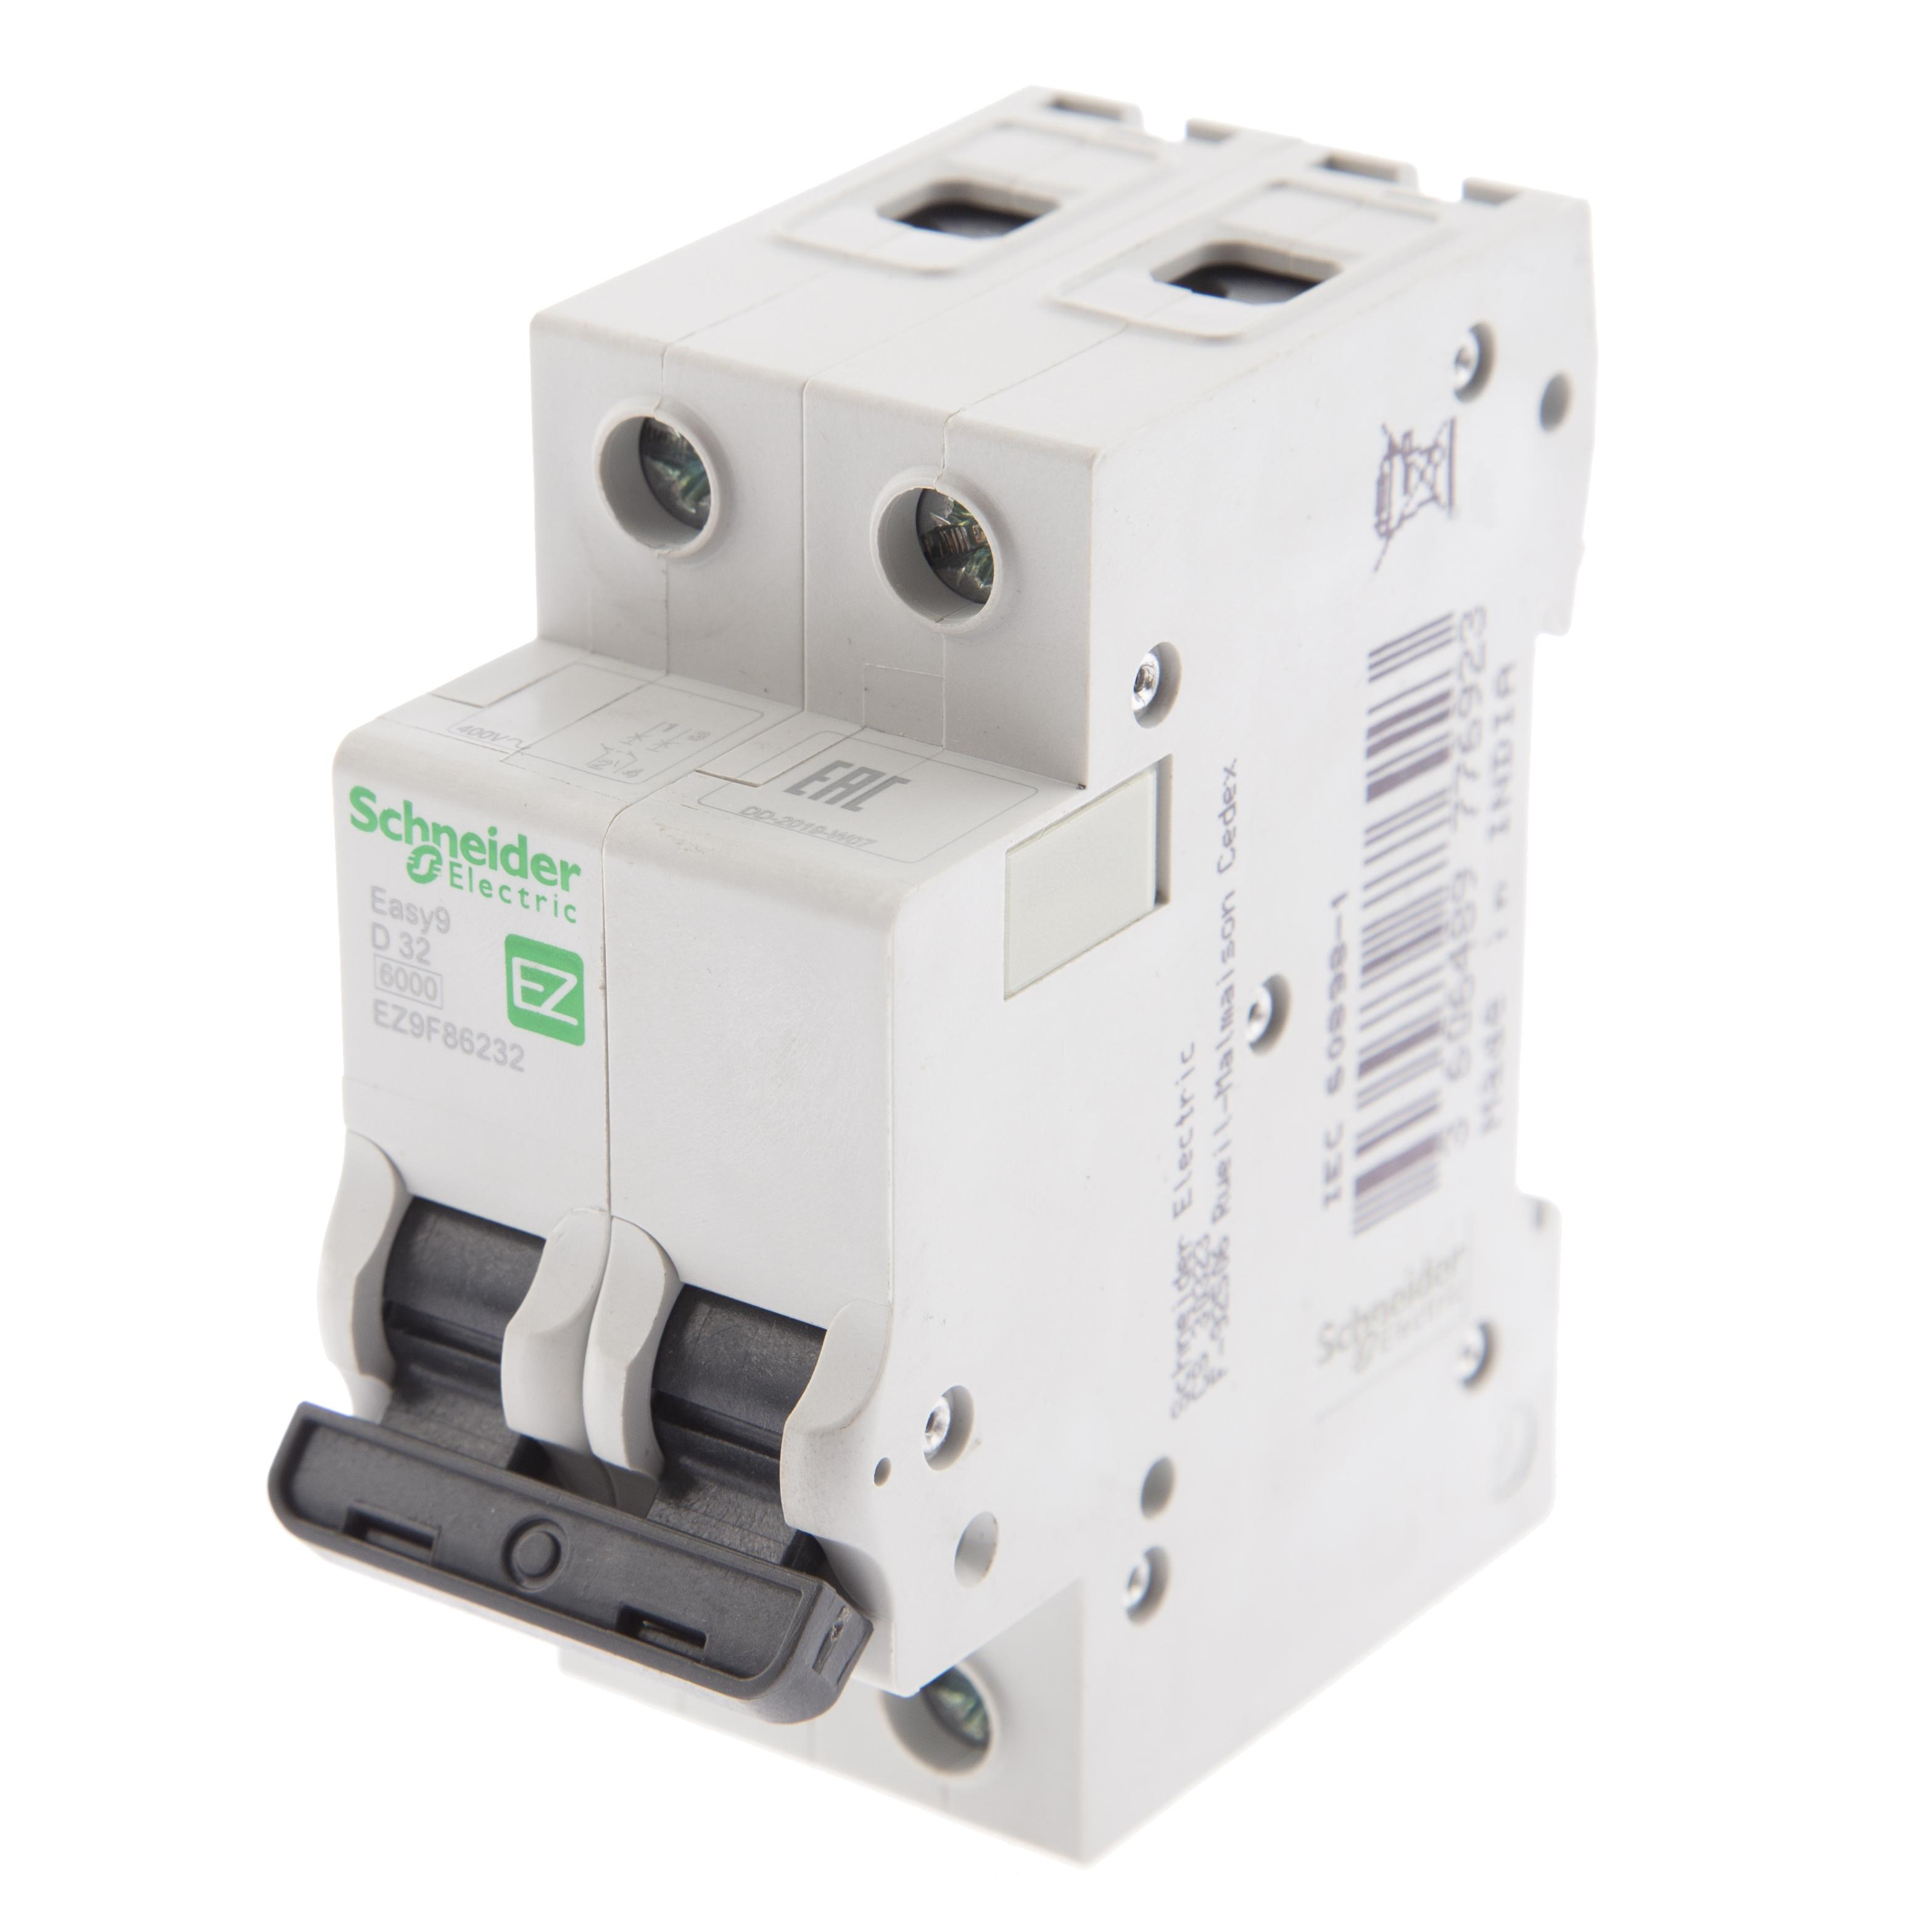 Выключатель Schneider electric Ez9f86232